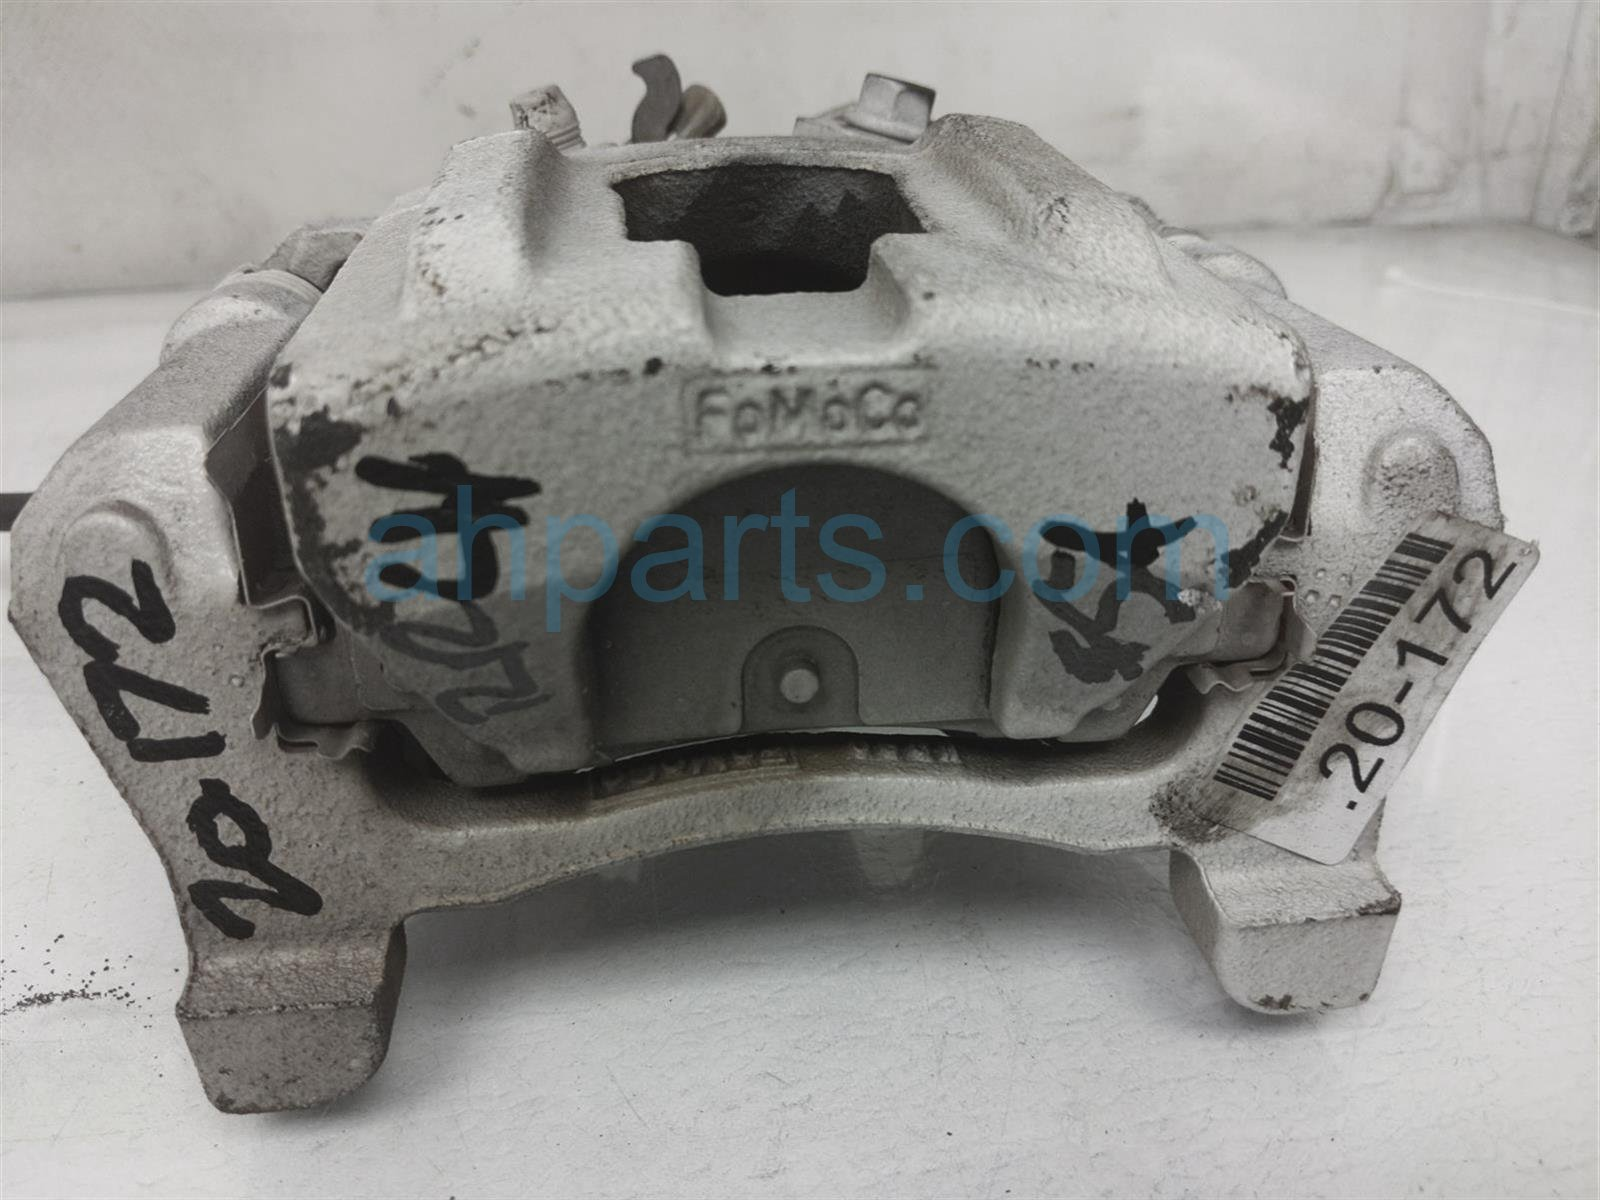 2017 Ford Mustang Rear Left Brake Caliper FR3Z 2553 H Replacement